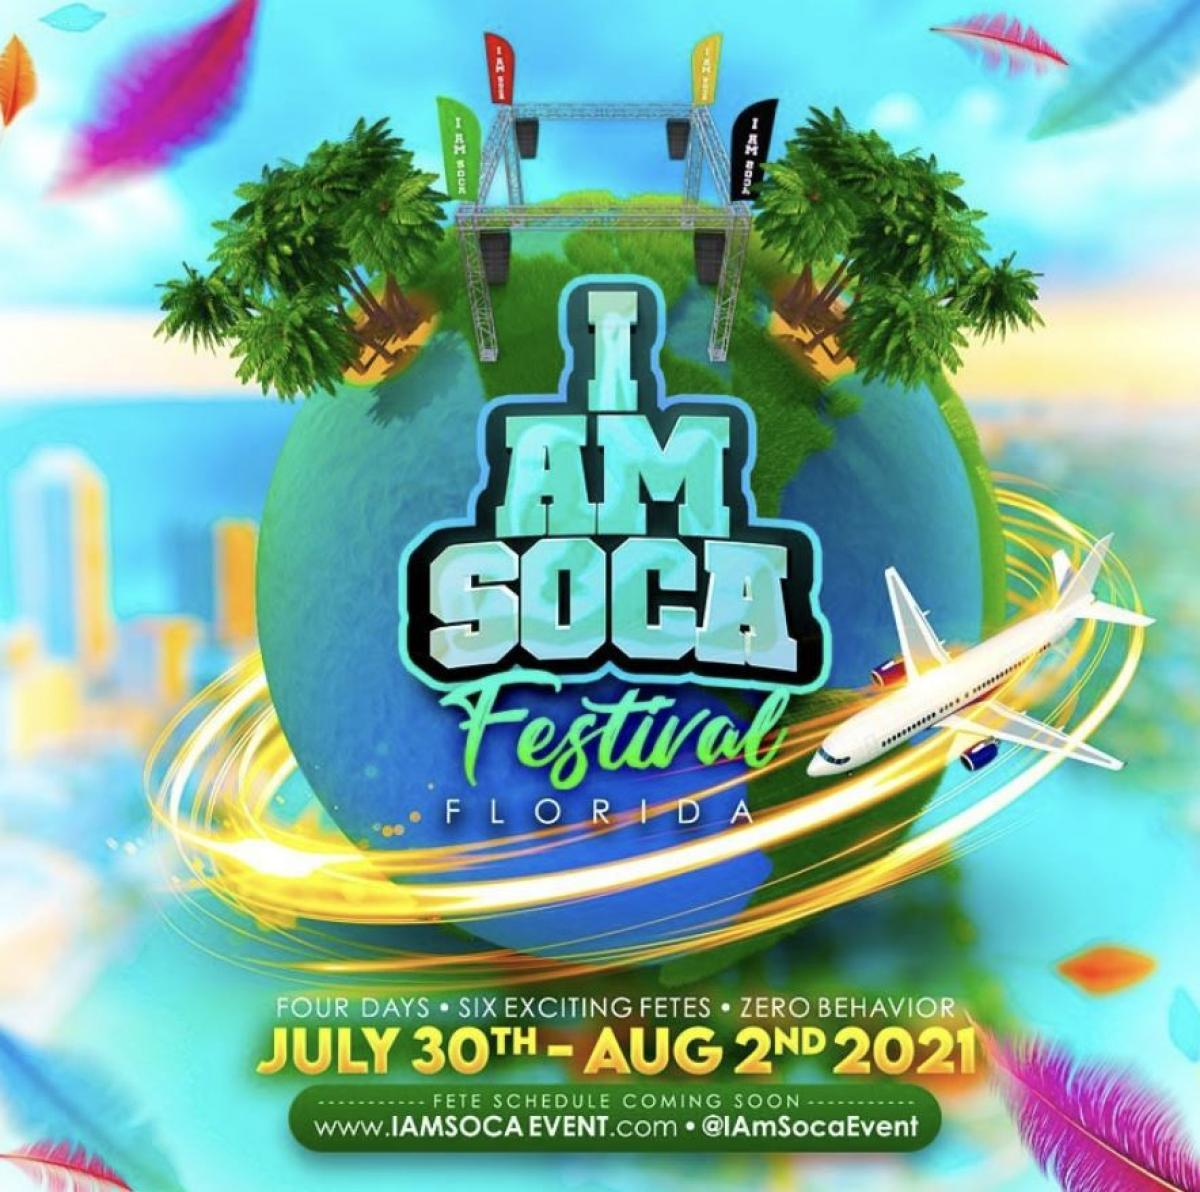 I Am Soca Festival All Access Pass flyer or graphic.